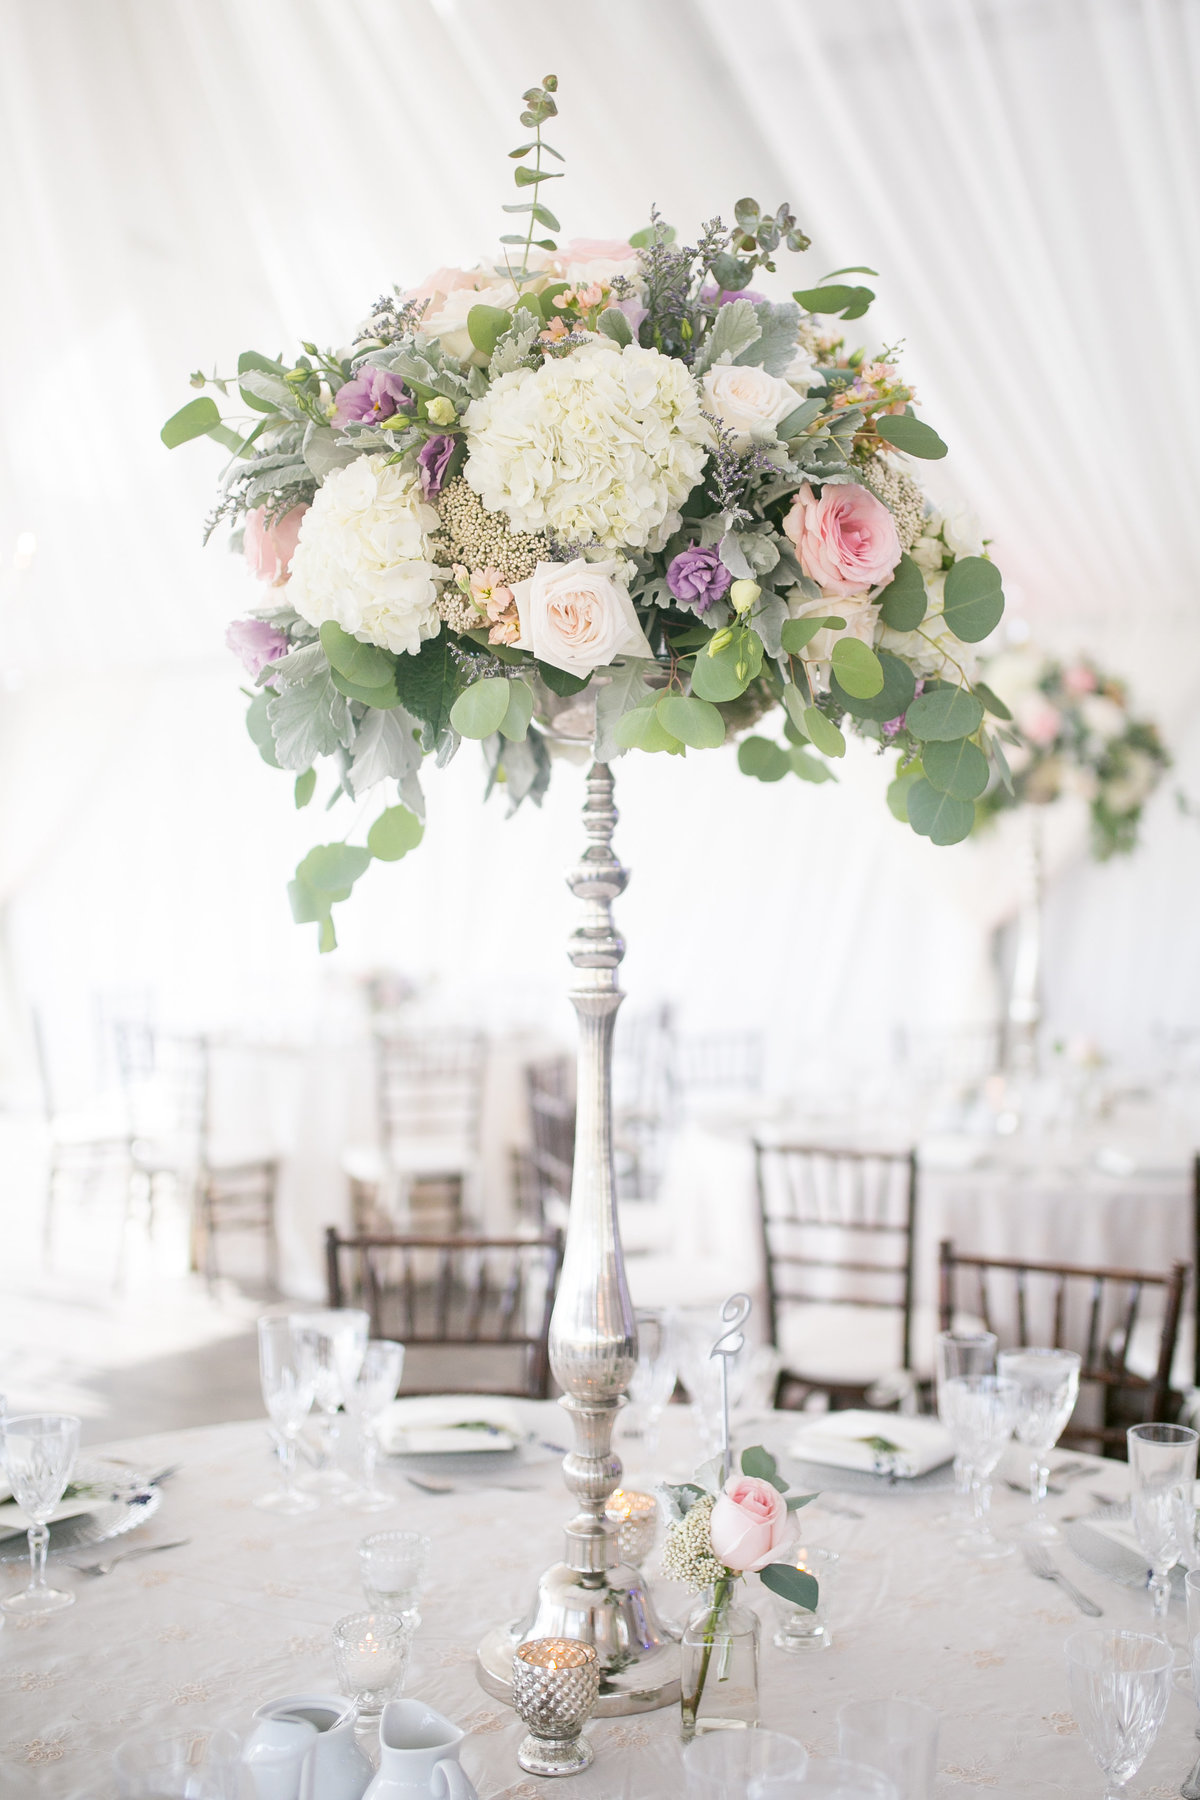 Tall floral centerpiece at wedding reception